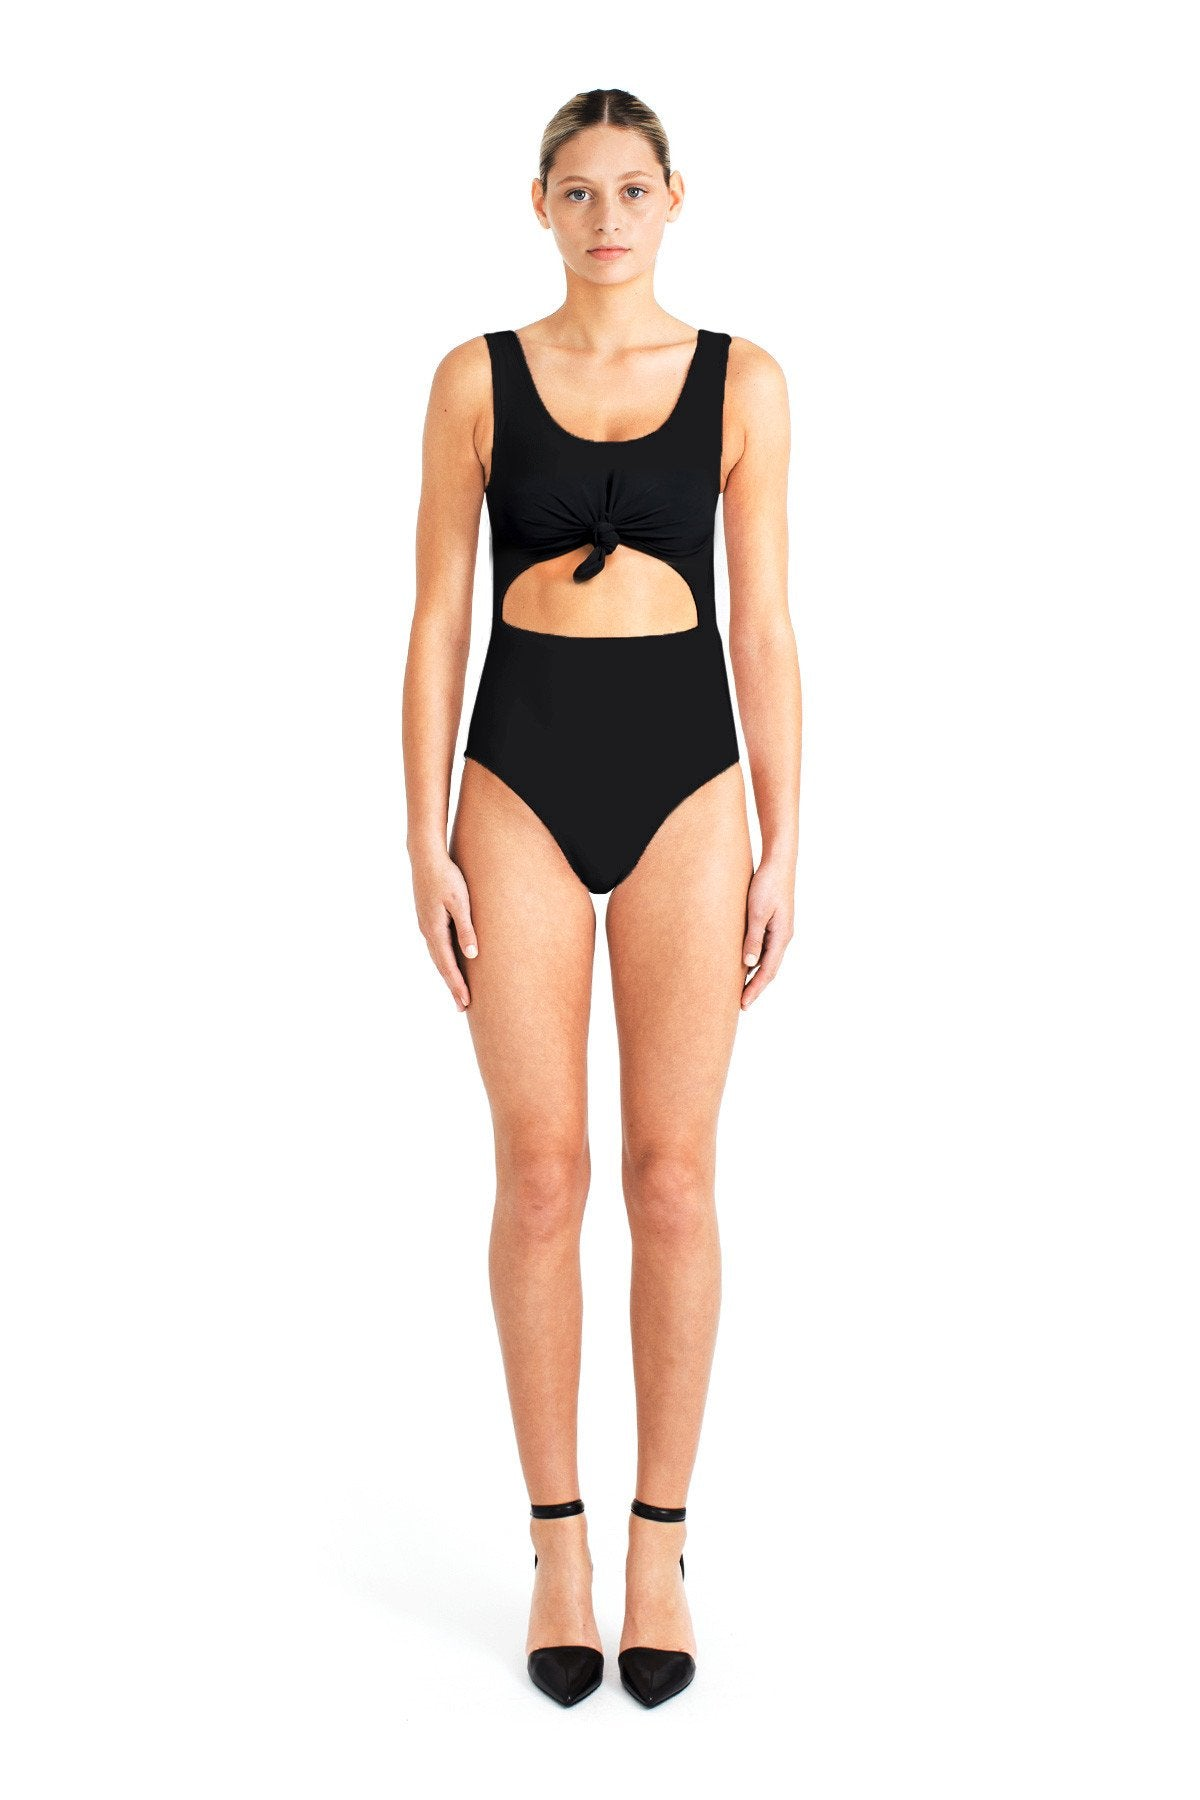 KNOT ONE PIECE - BLACK - Beth Richards